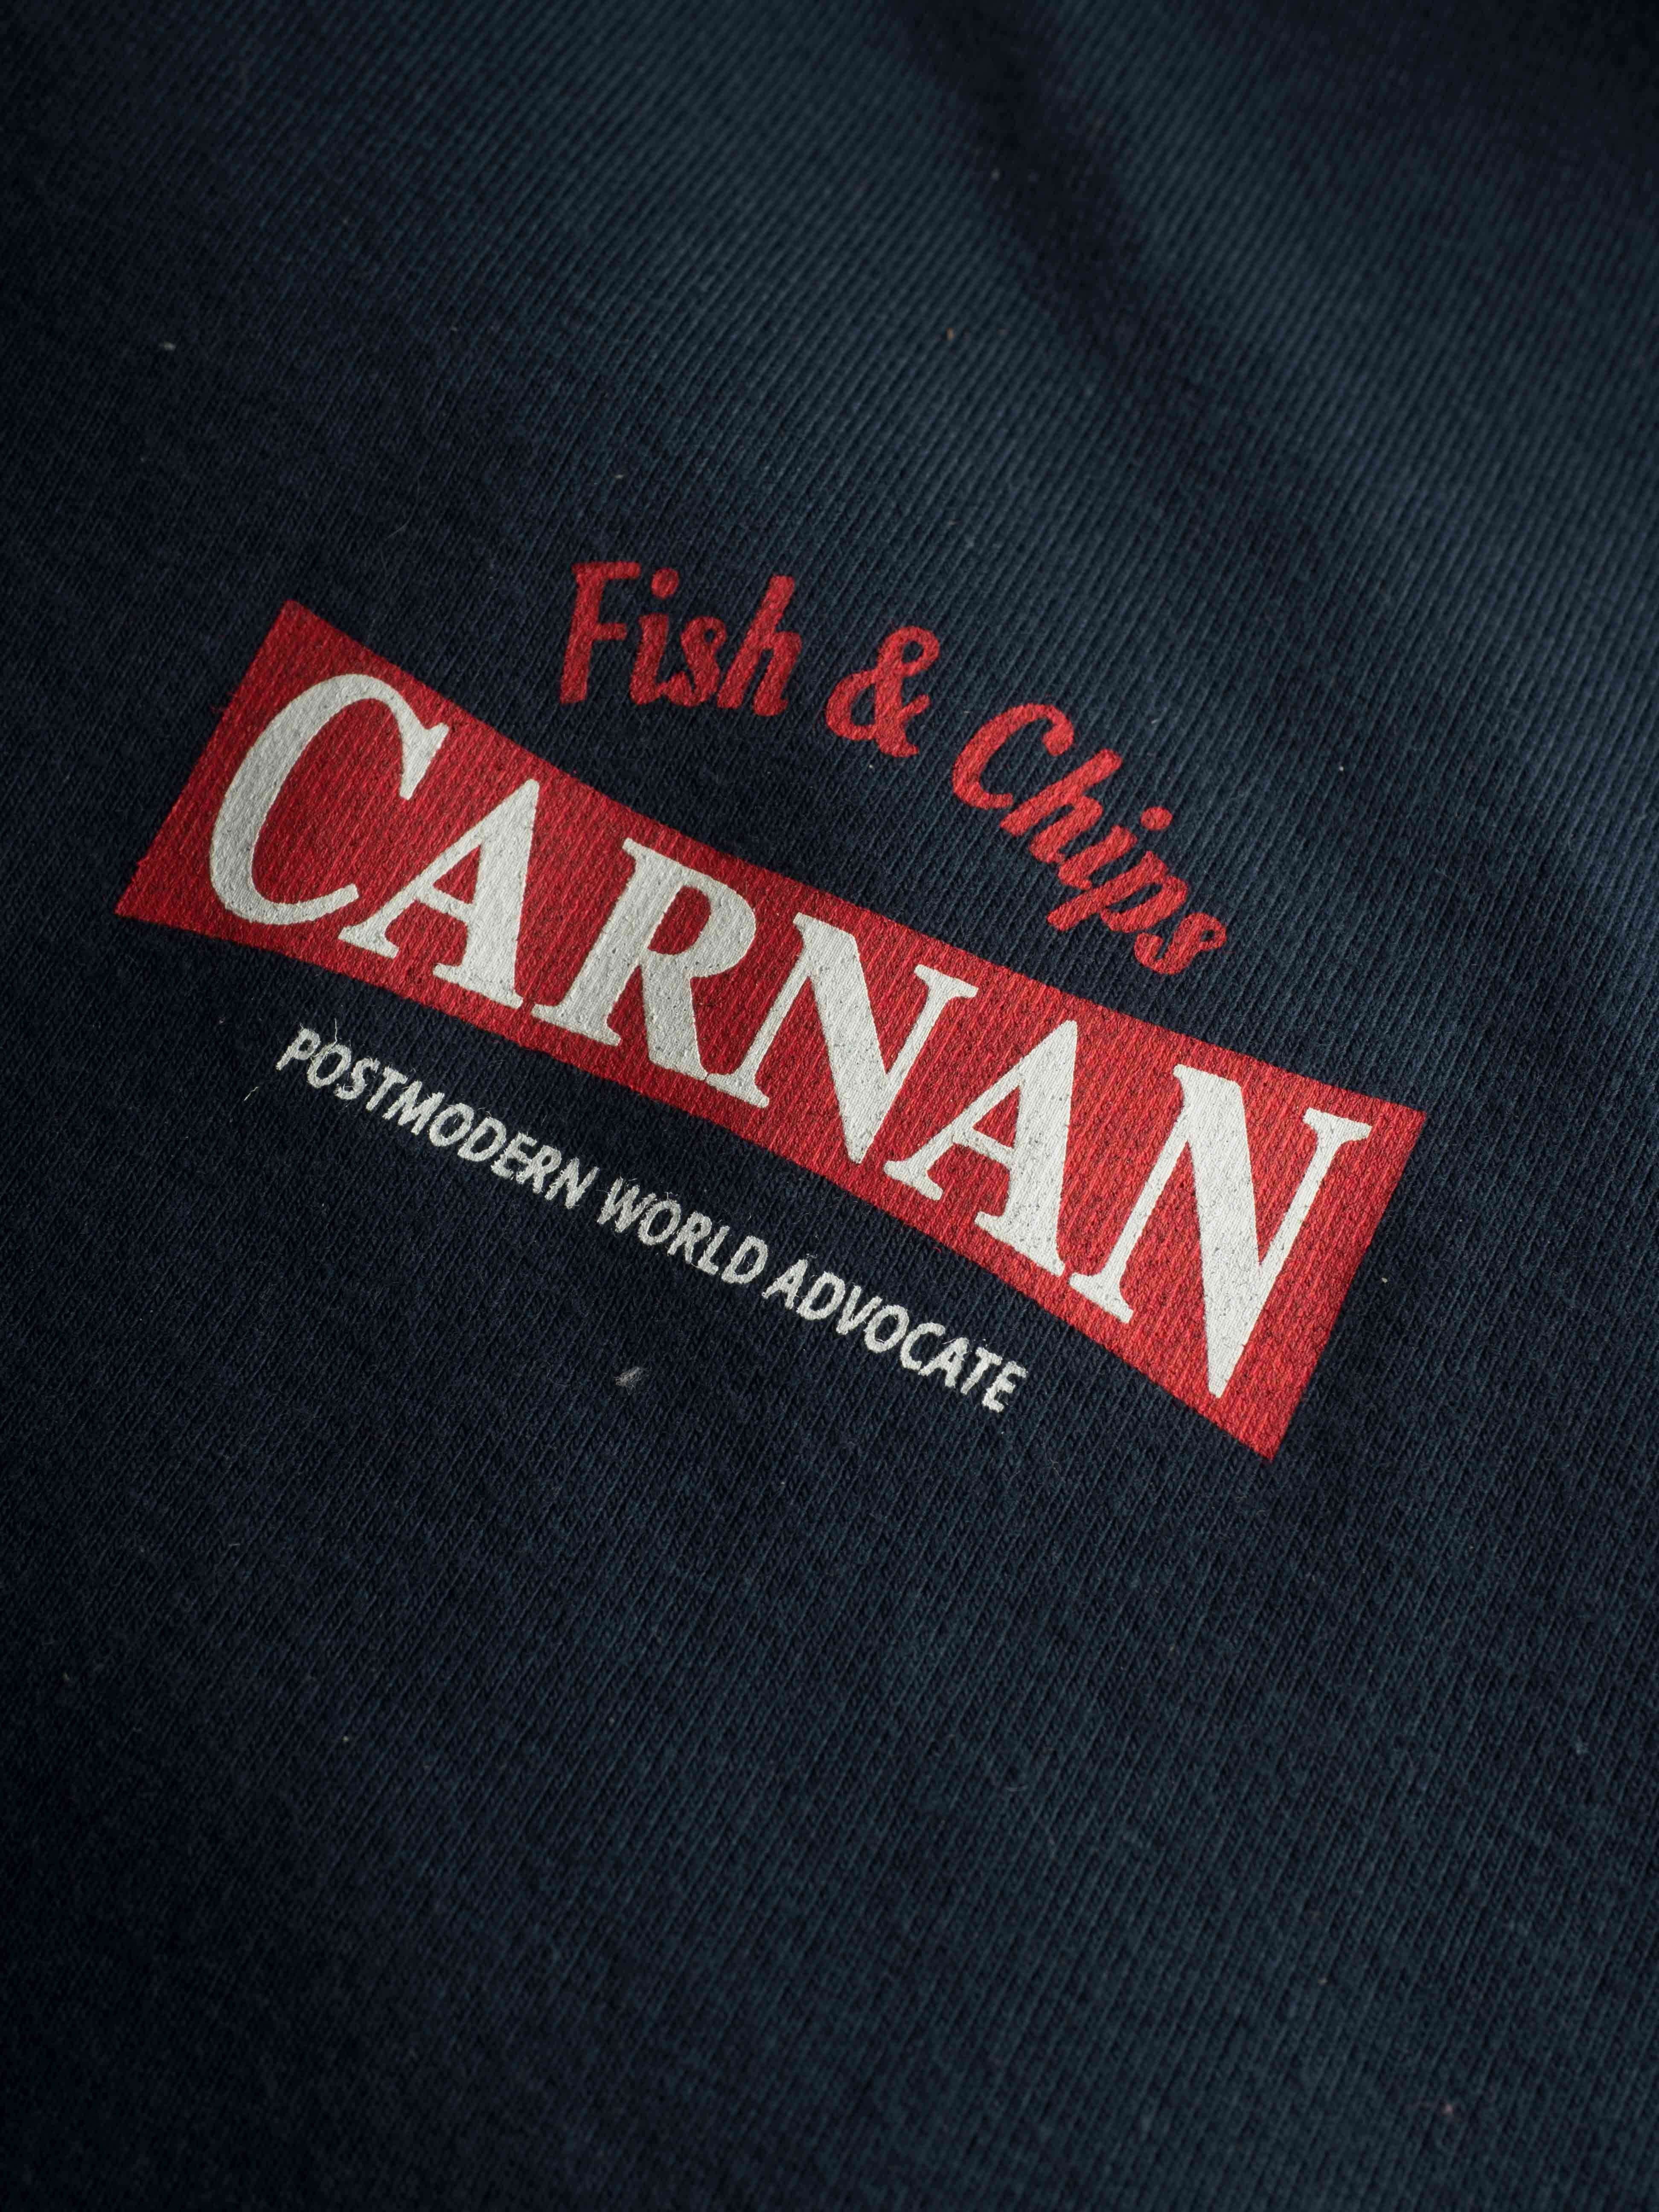 Carnan Fish and Chips